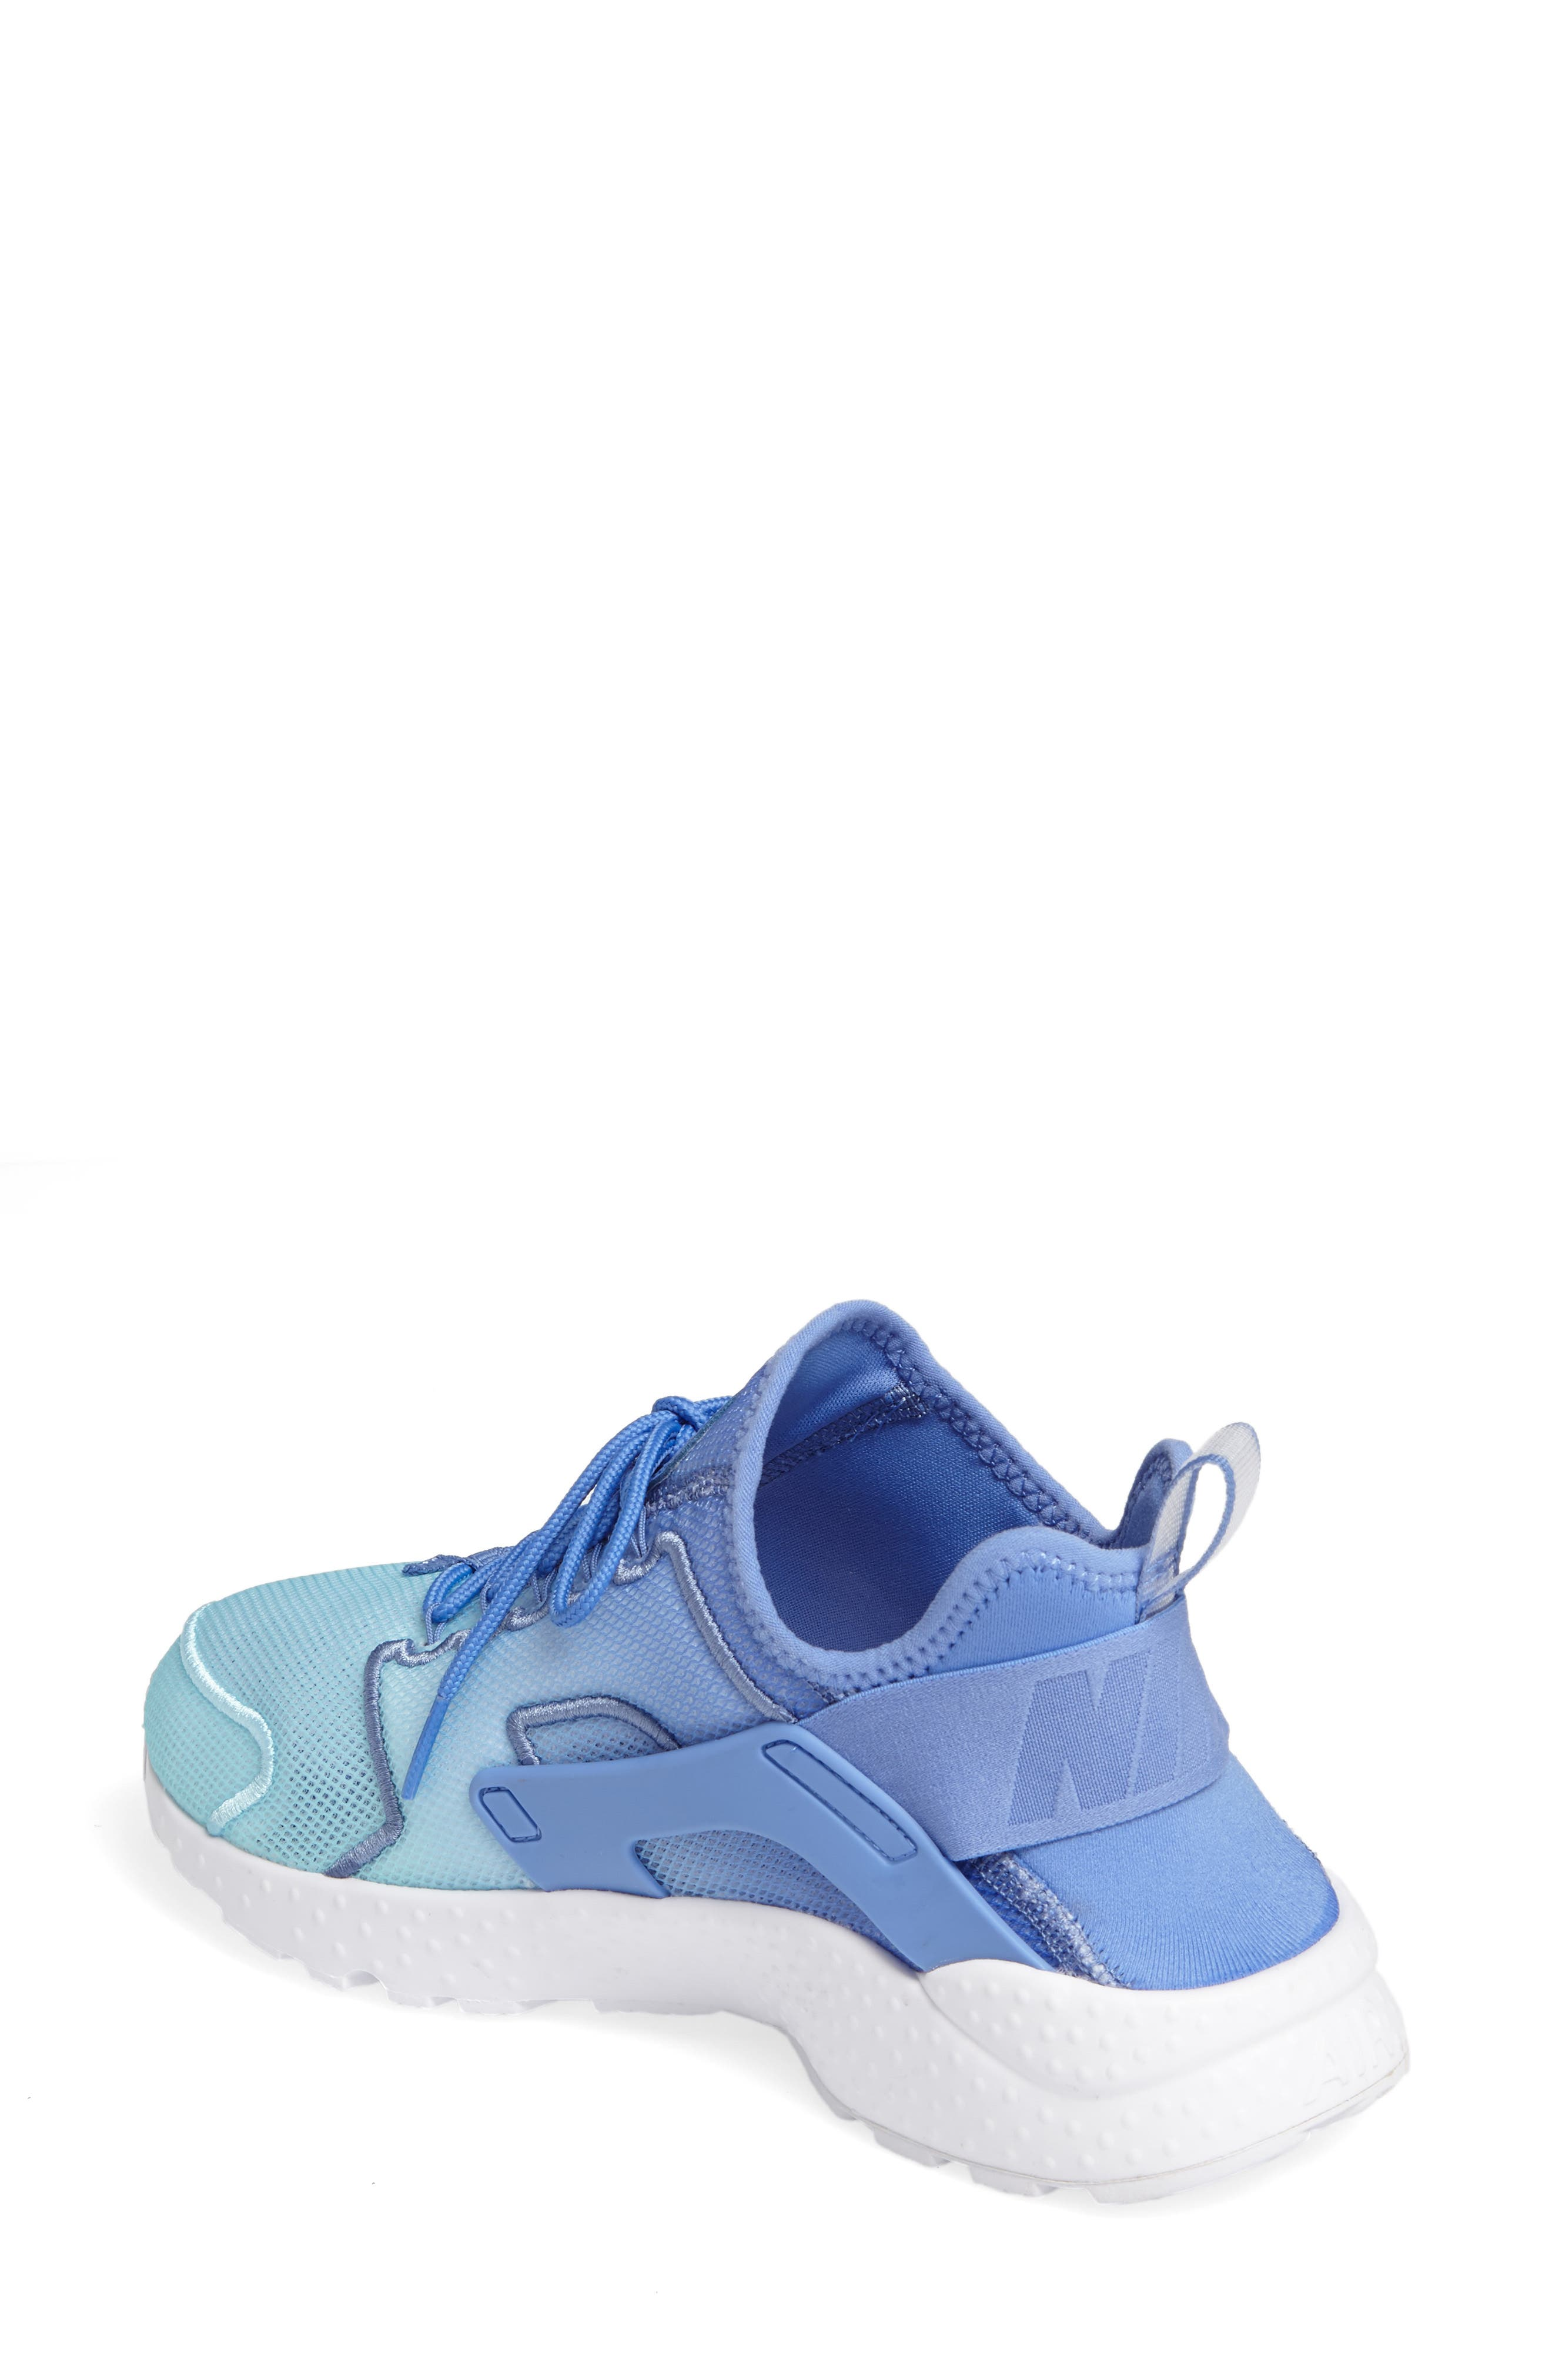 Alternate Image 2  - Nike 'Air Huarache Run Ultra Mesh' Sneaker (Women)